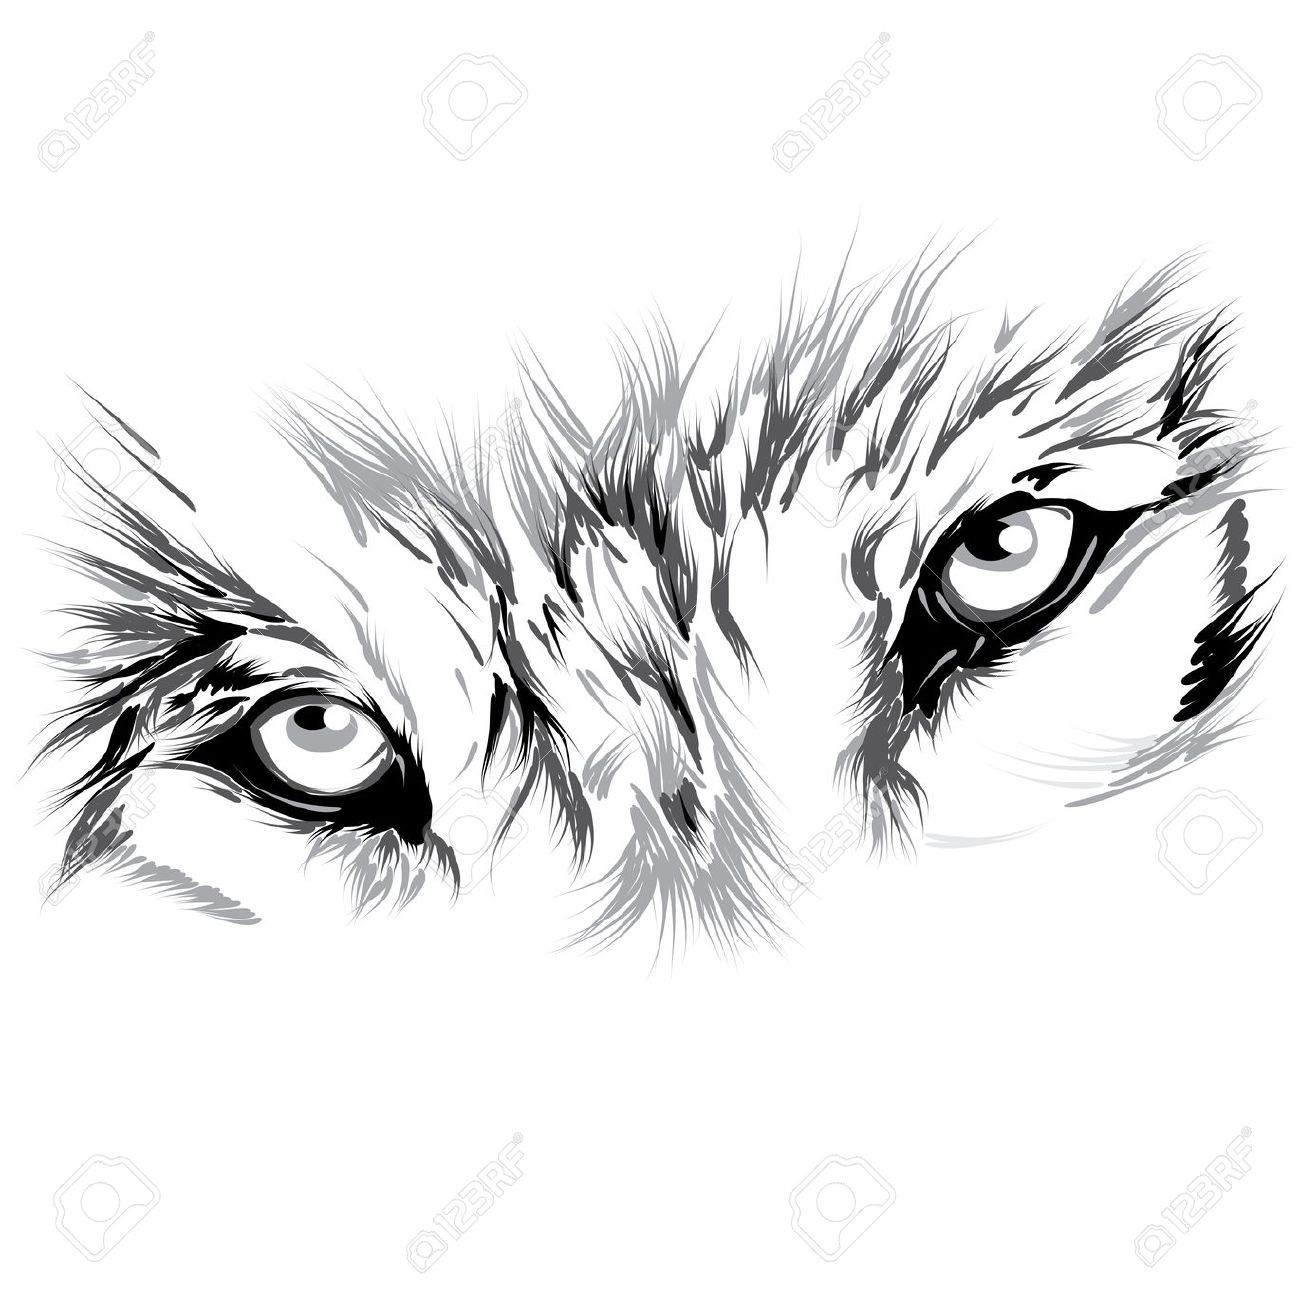 Pin By Mooniique On Ink Wolf Tattoos Wolf Eye Tattoo Wolf Eyes